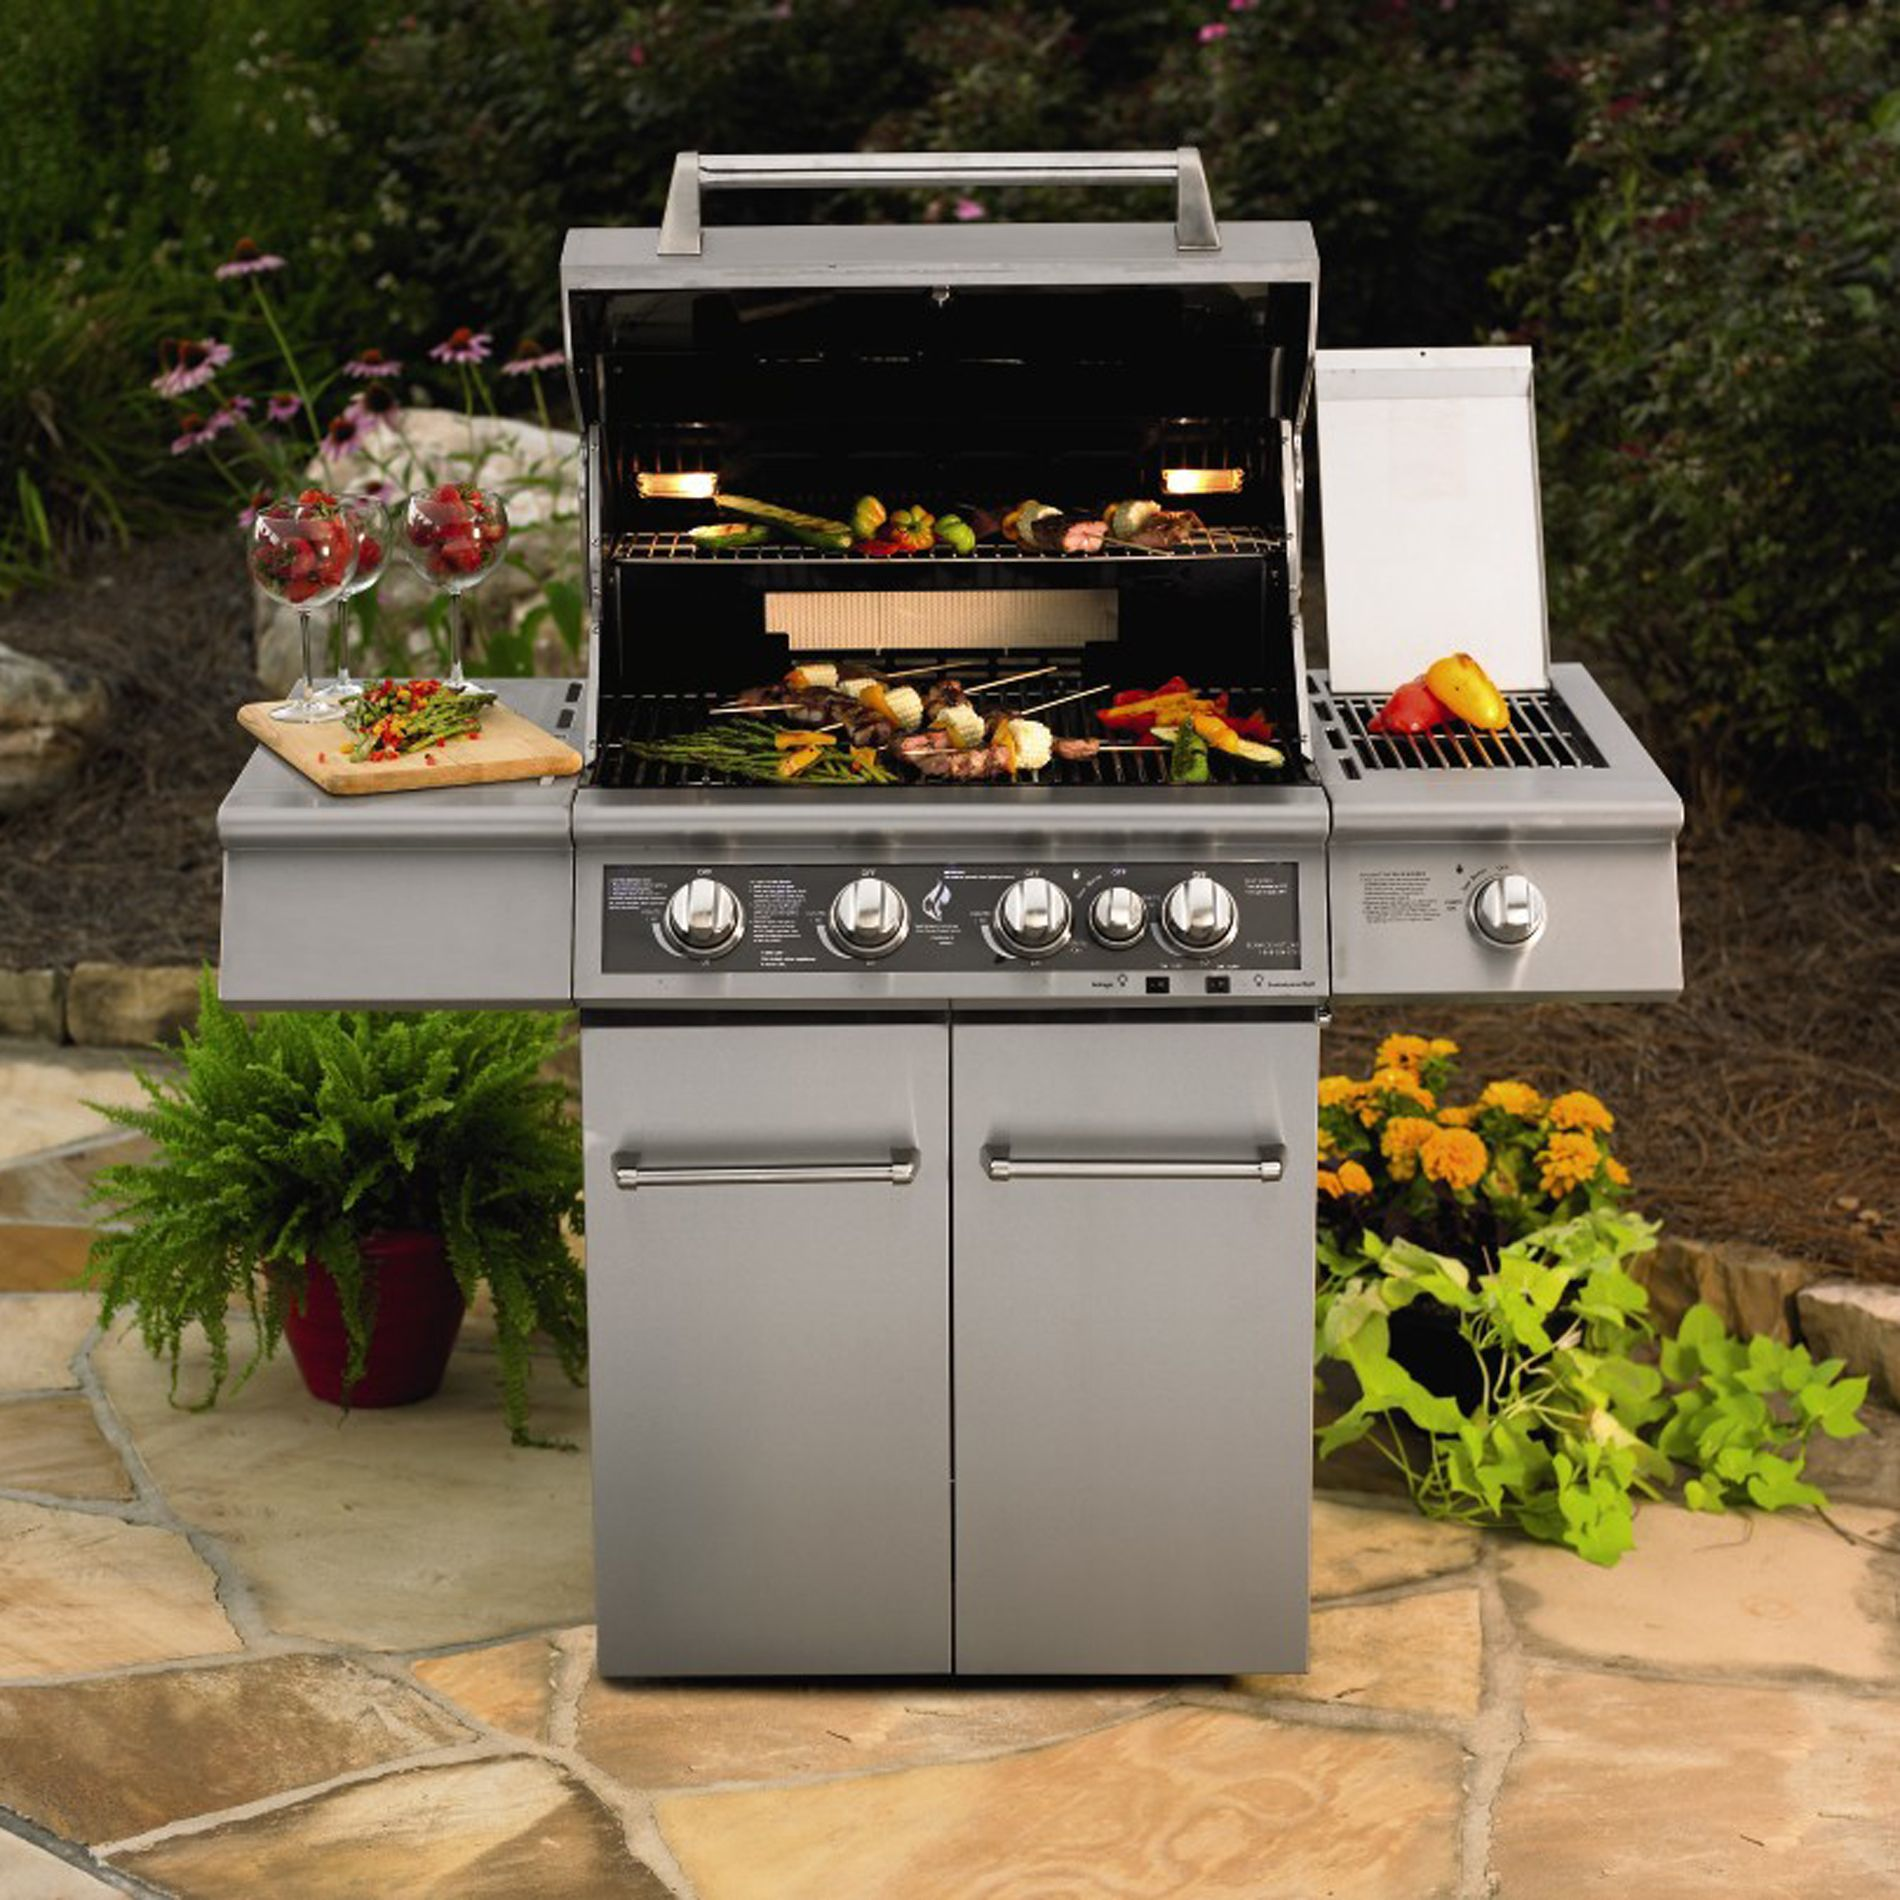 KitchenAid Burner Dual Energy Outdoor Gas Grill w LED Backlit Control Panel